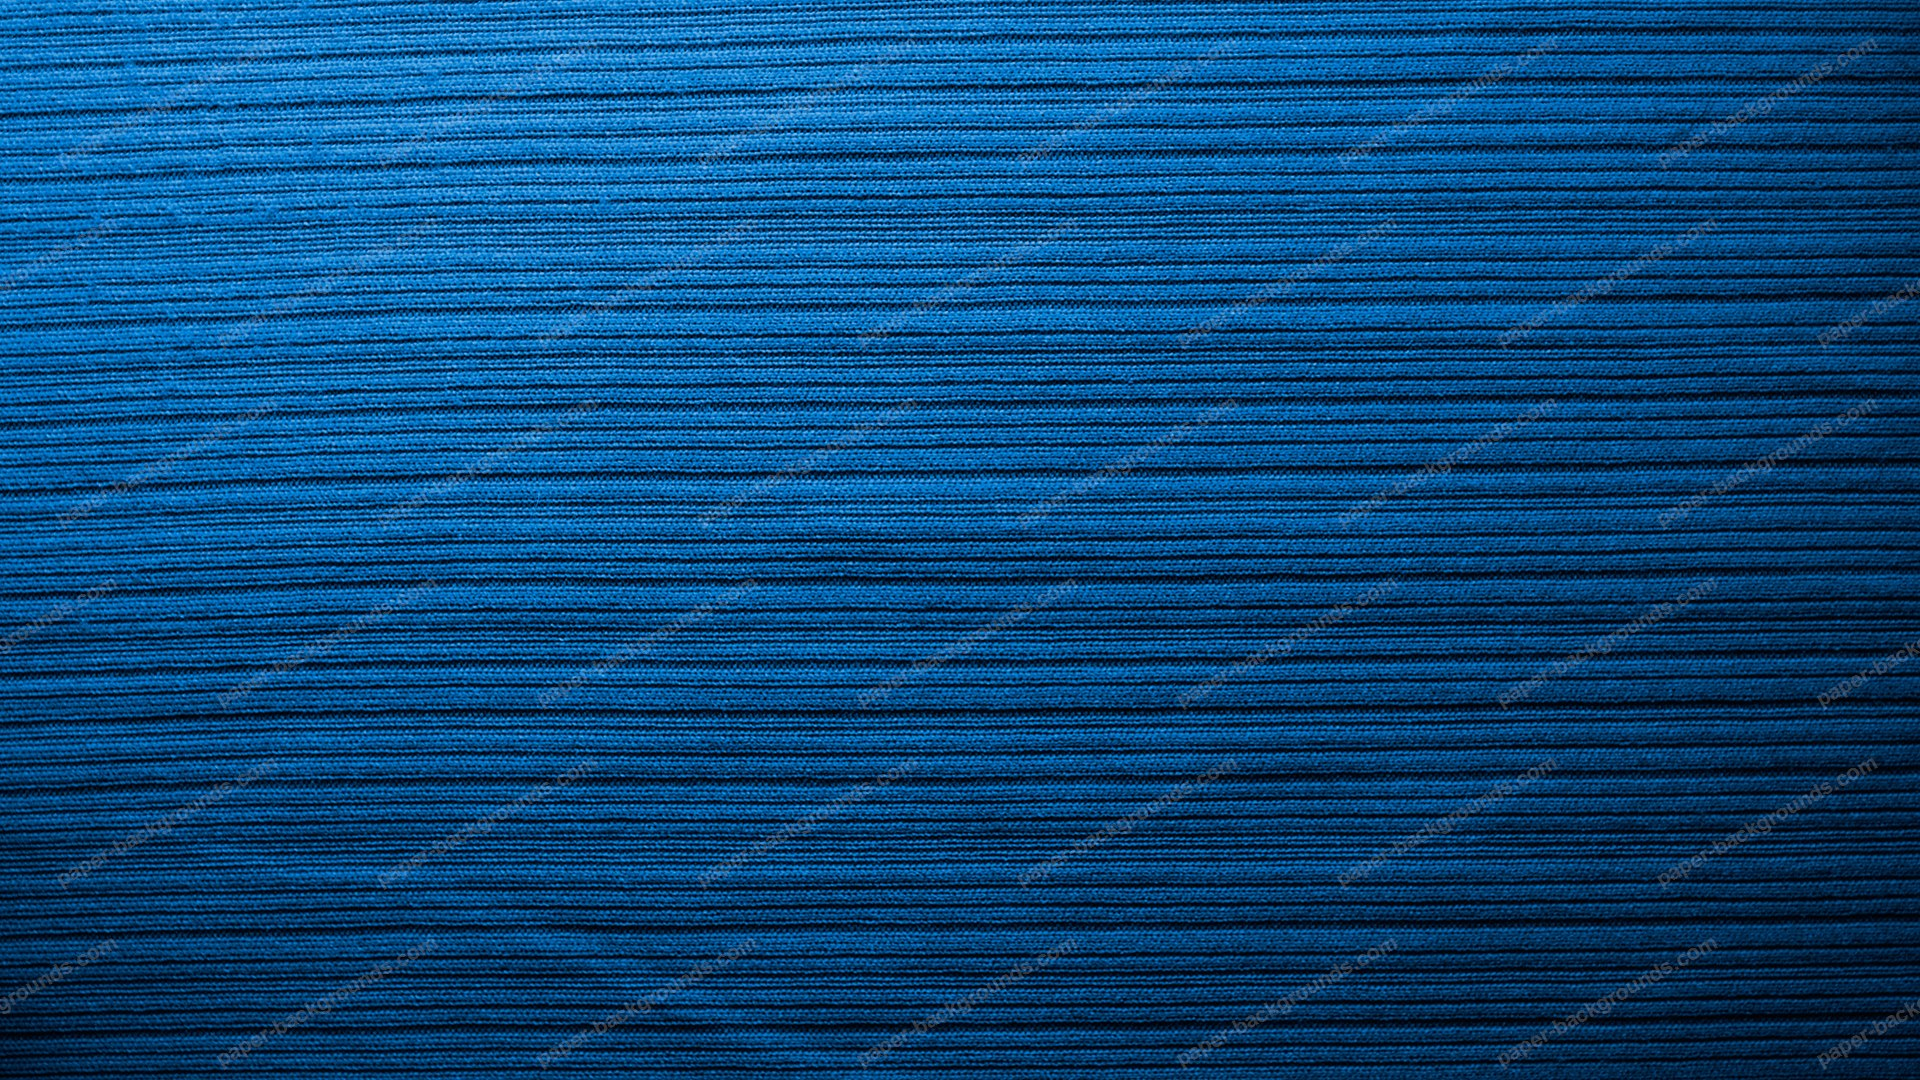 Blue Fabric Background With Stripes HD 1920 x 1080p